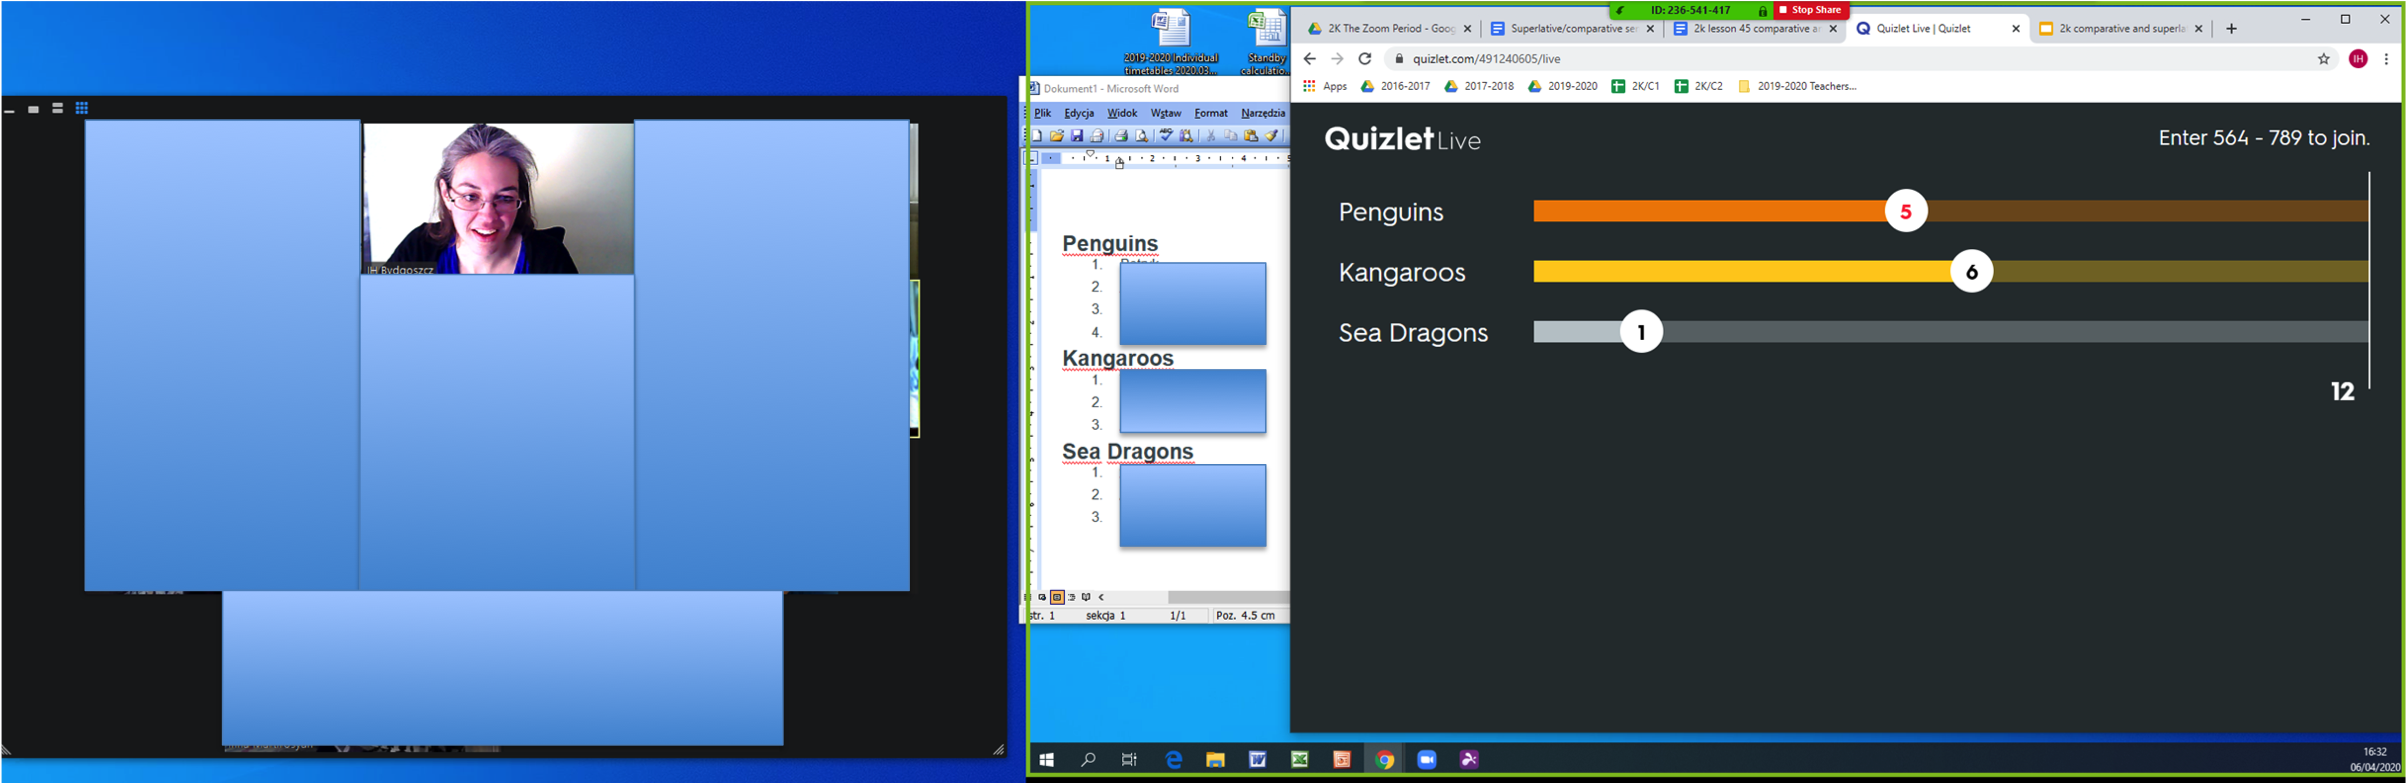 Quizlet Live on Zoom